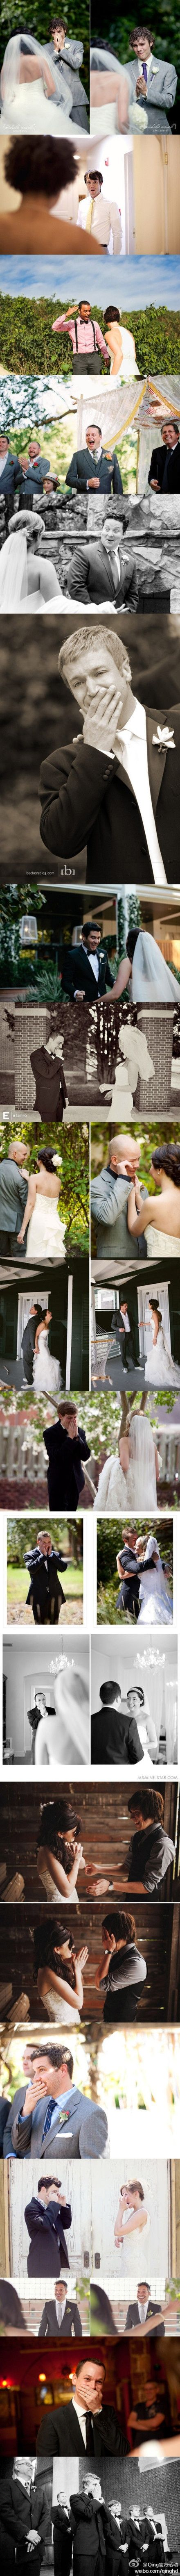 I love how it shows the men getting choked up when they see how beautiful the bride is. They have feelings too!